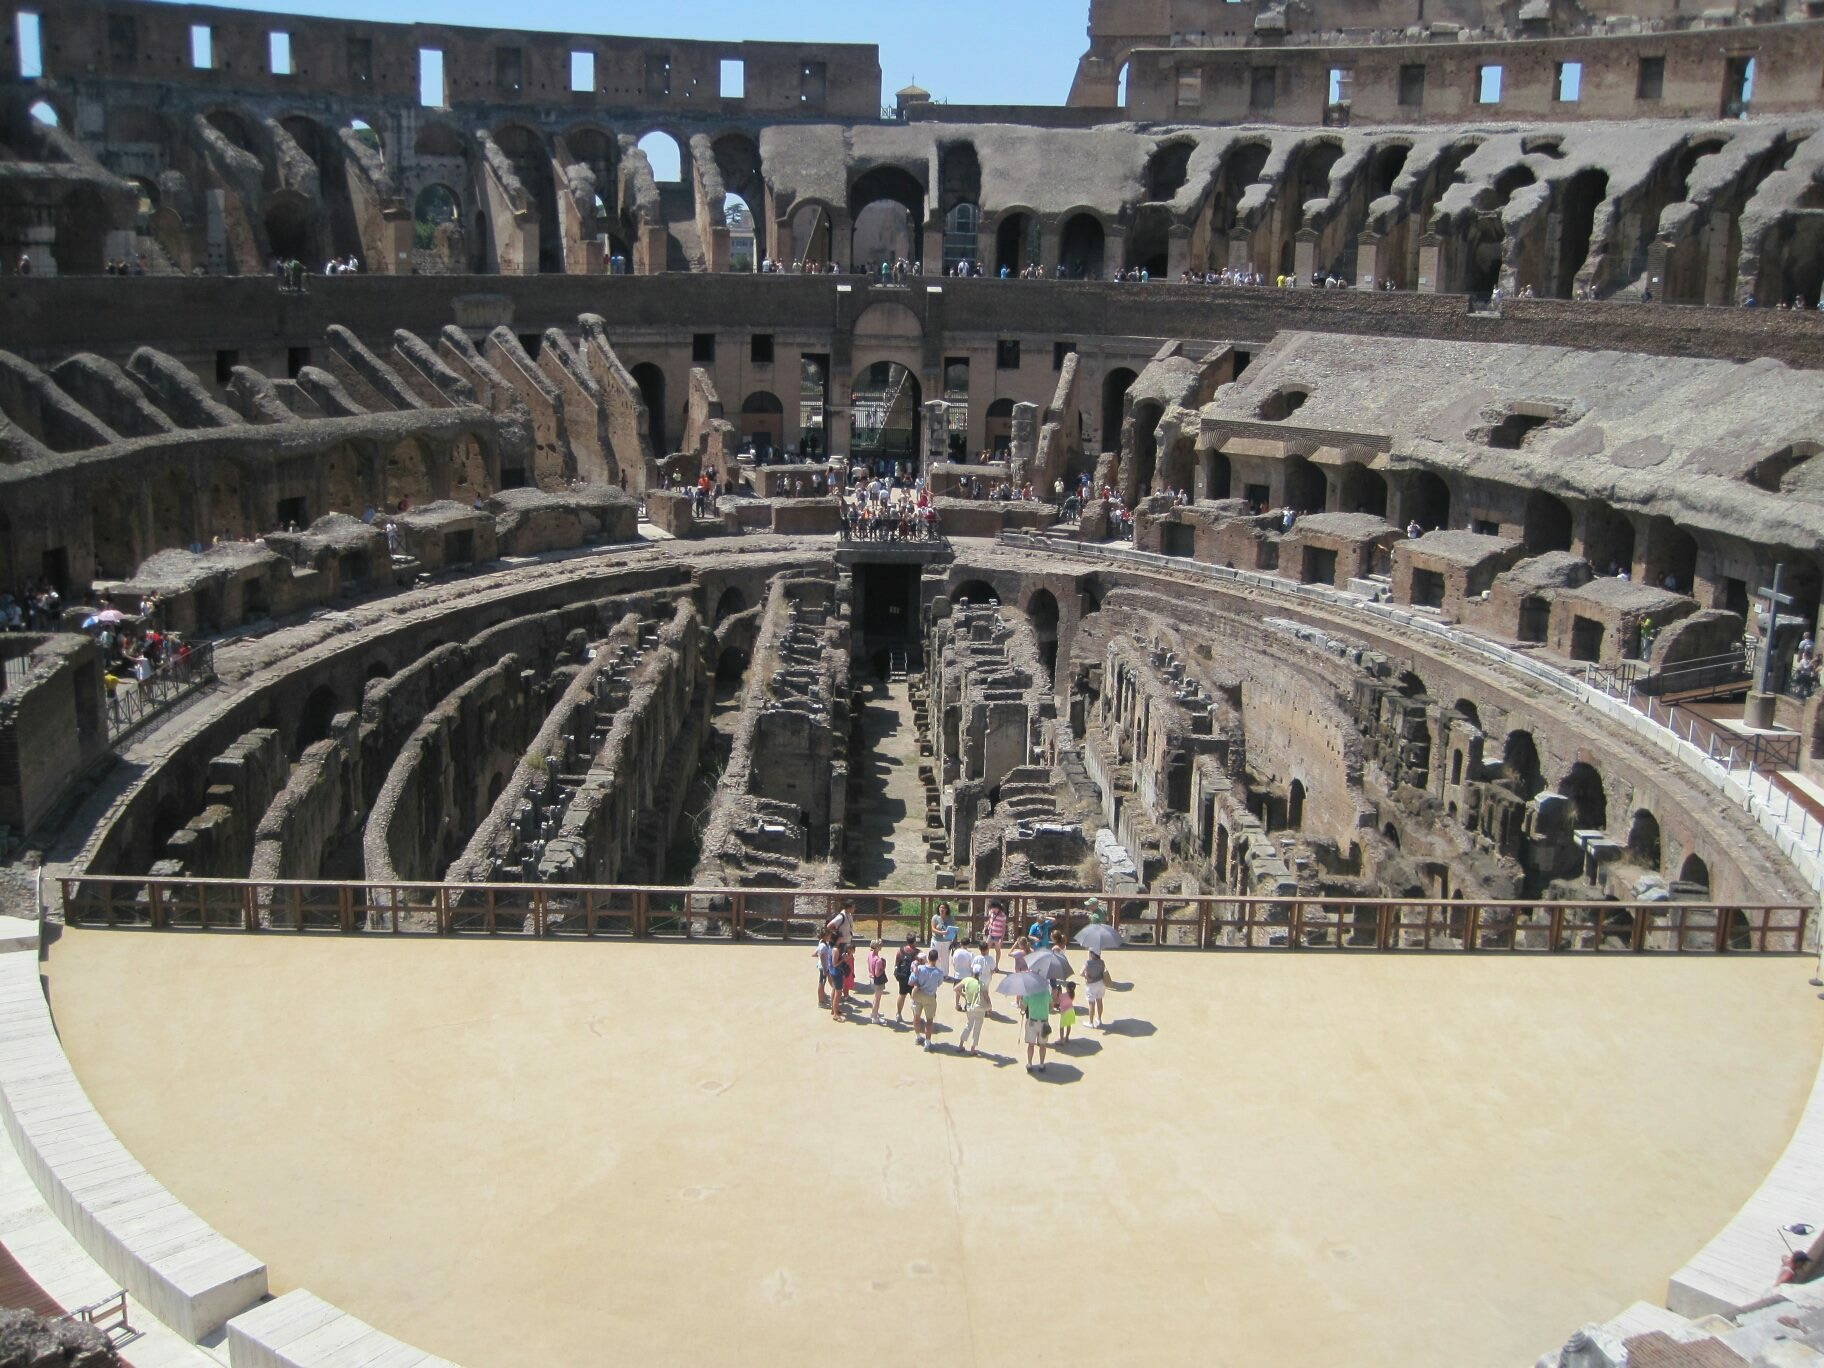 Colosseum from above